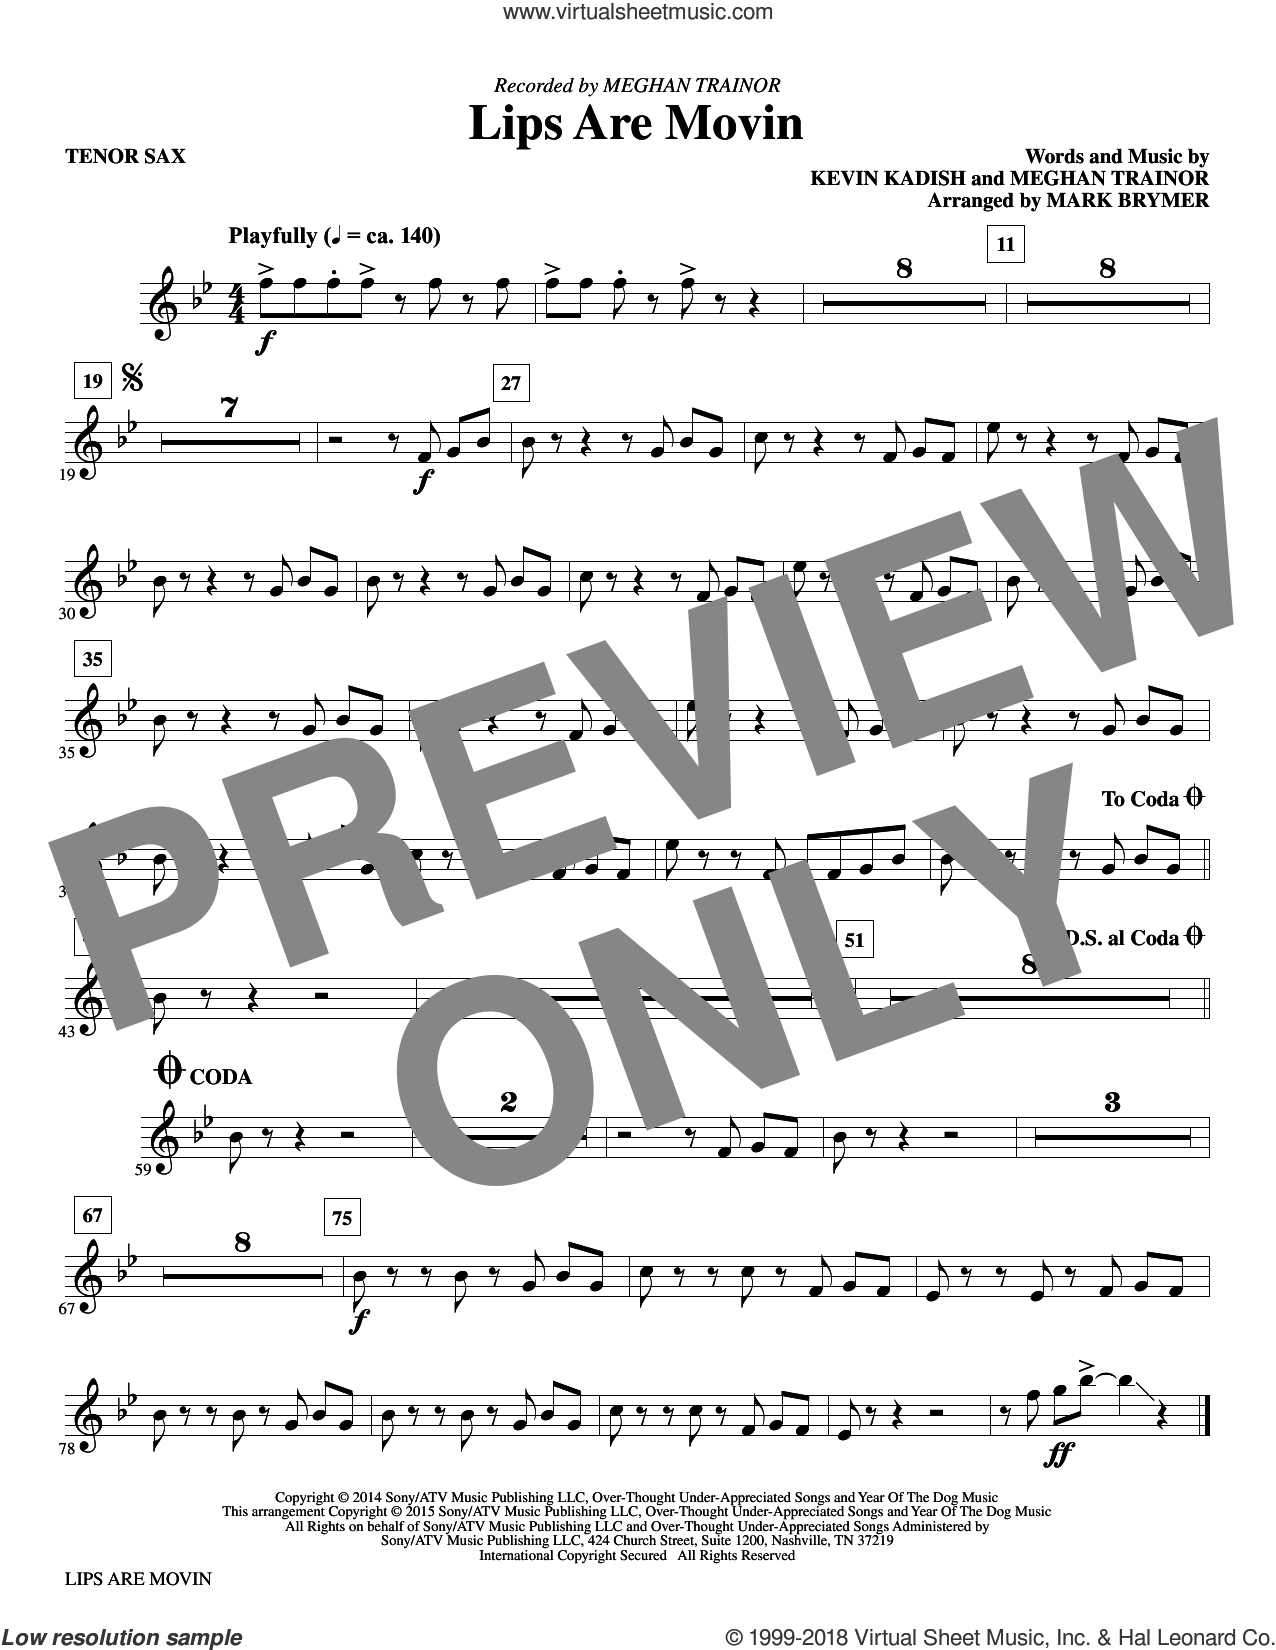 Lips Are Movin (complete set of parts) sheet music for orchestra/band by Mark Brymer, Kevin Kadish and Meghan Trainor, intermediate skill level